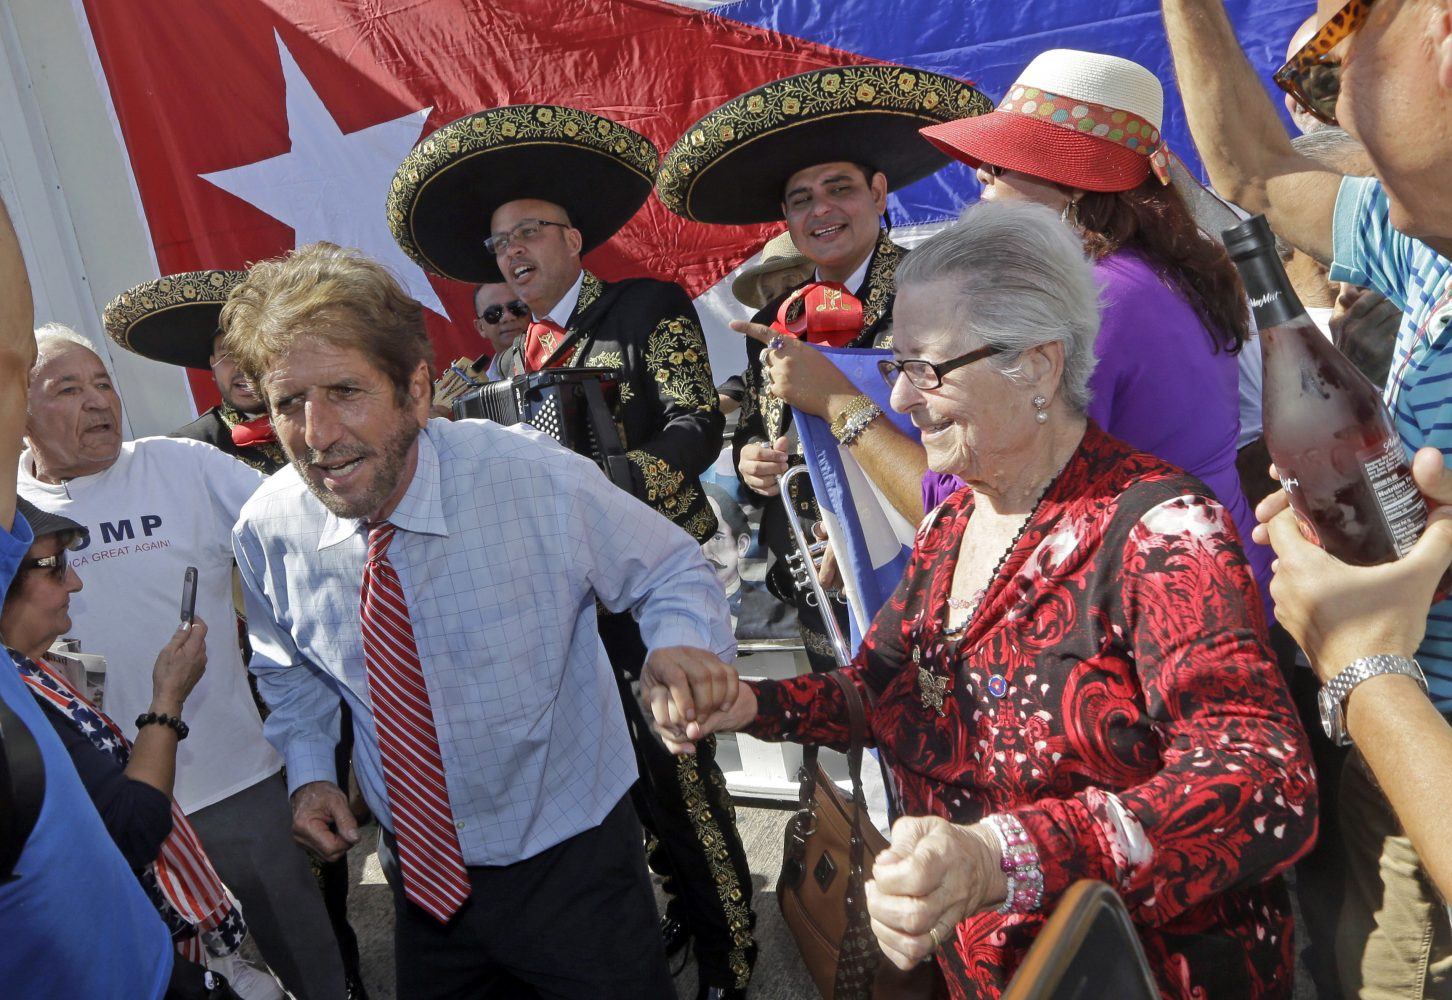 Cuban-American Miguel Saavedra, left, dances to the music of a mariachi group as they celebrate, Friday, Jan. 20, 2017, in the Little Havana area in Miami, before President-elect Donald Trump is sworn in as the 45th president of the United States. (AP Photo/Alan Diaz)